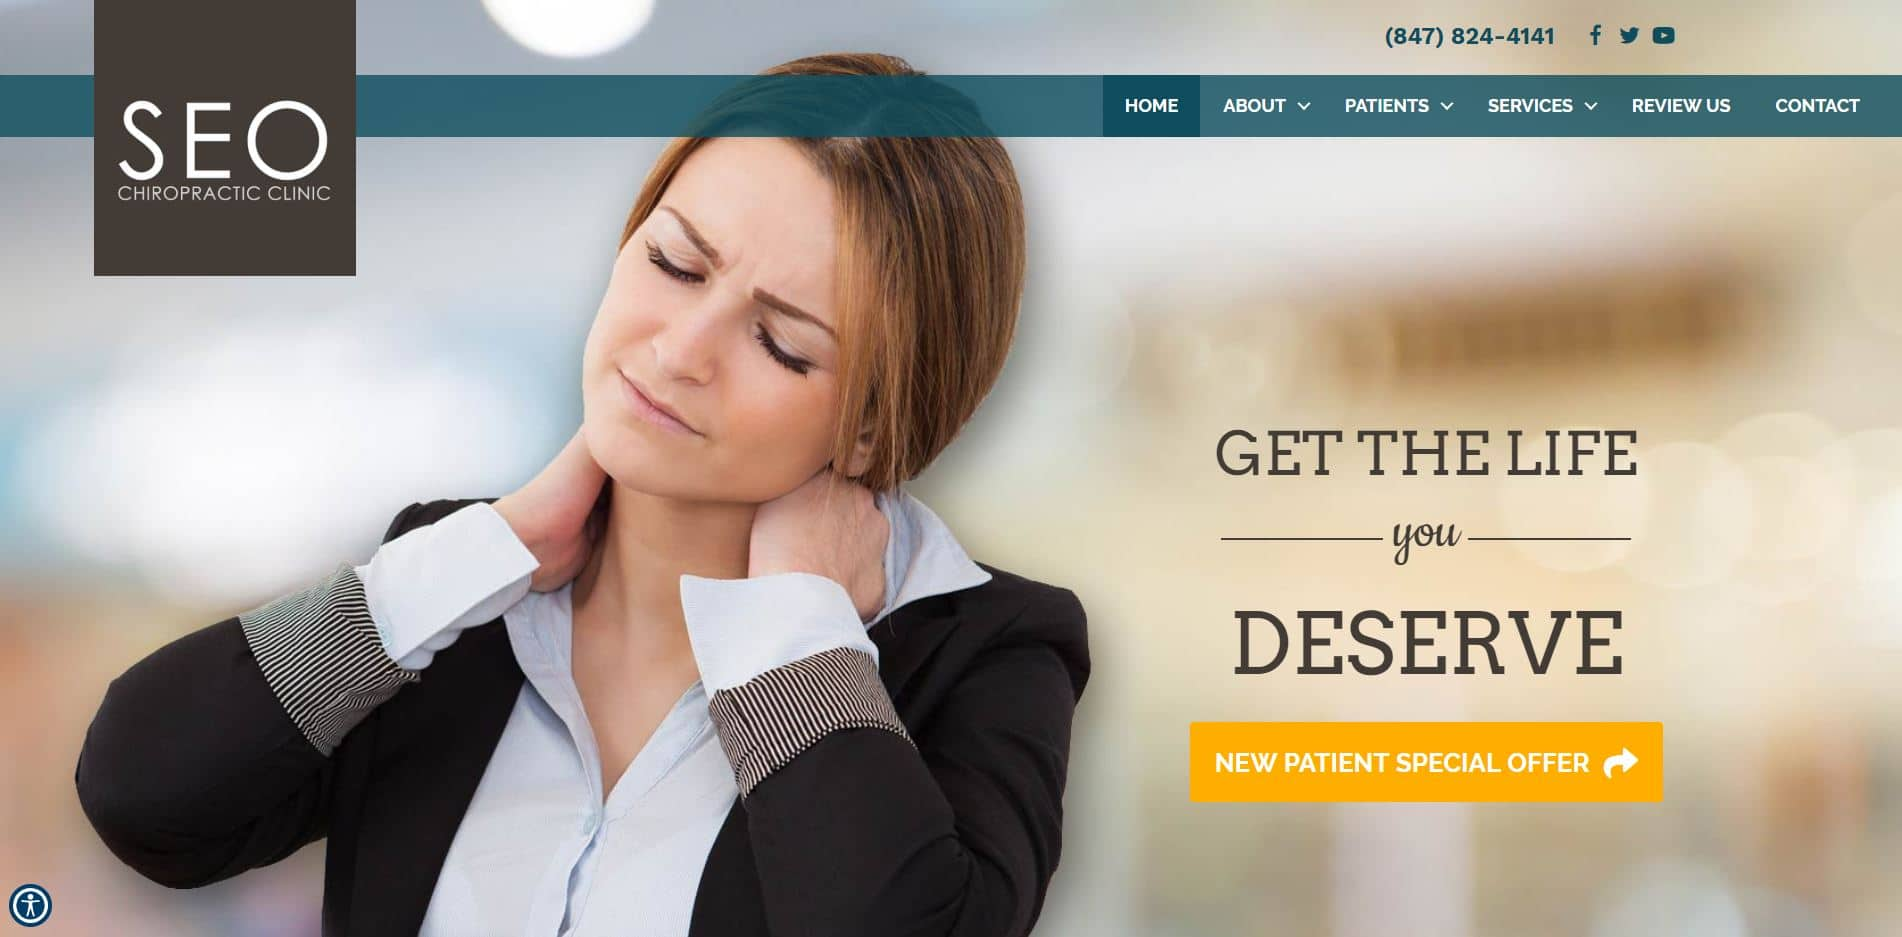 Chiropractor in Niles